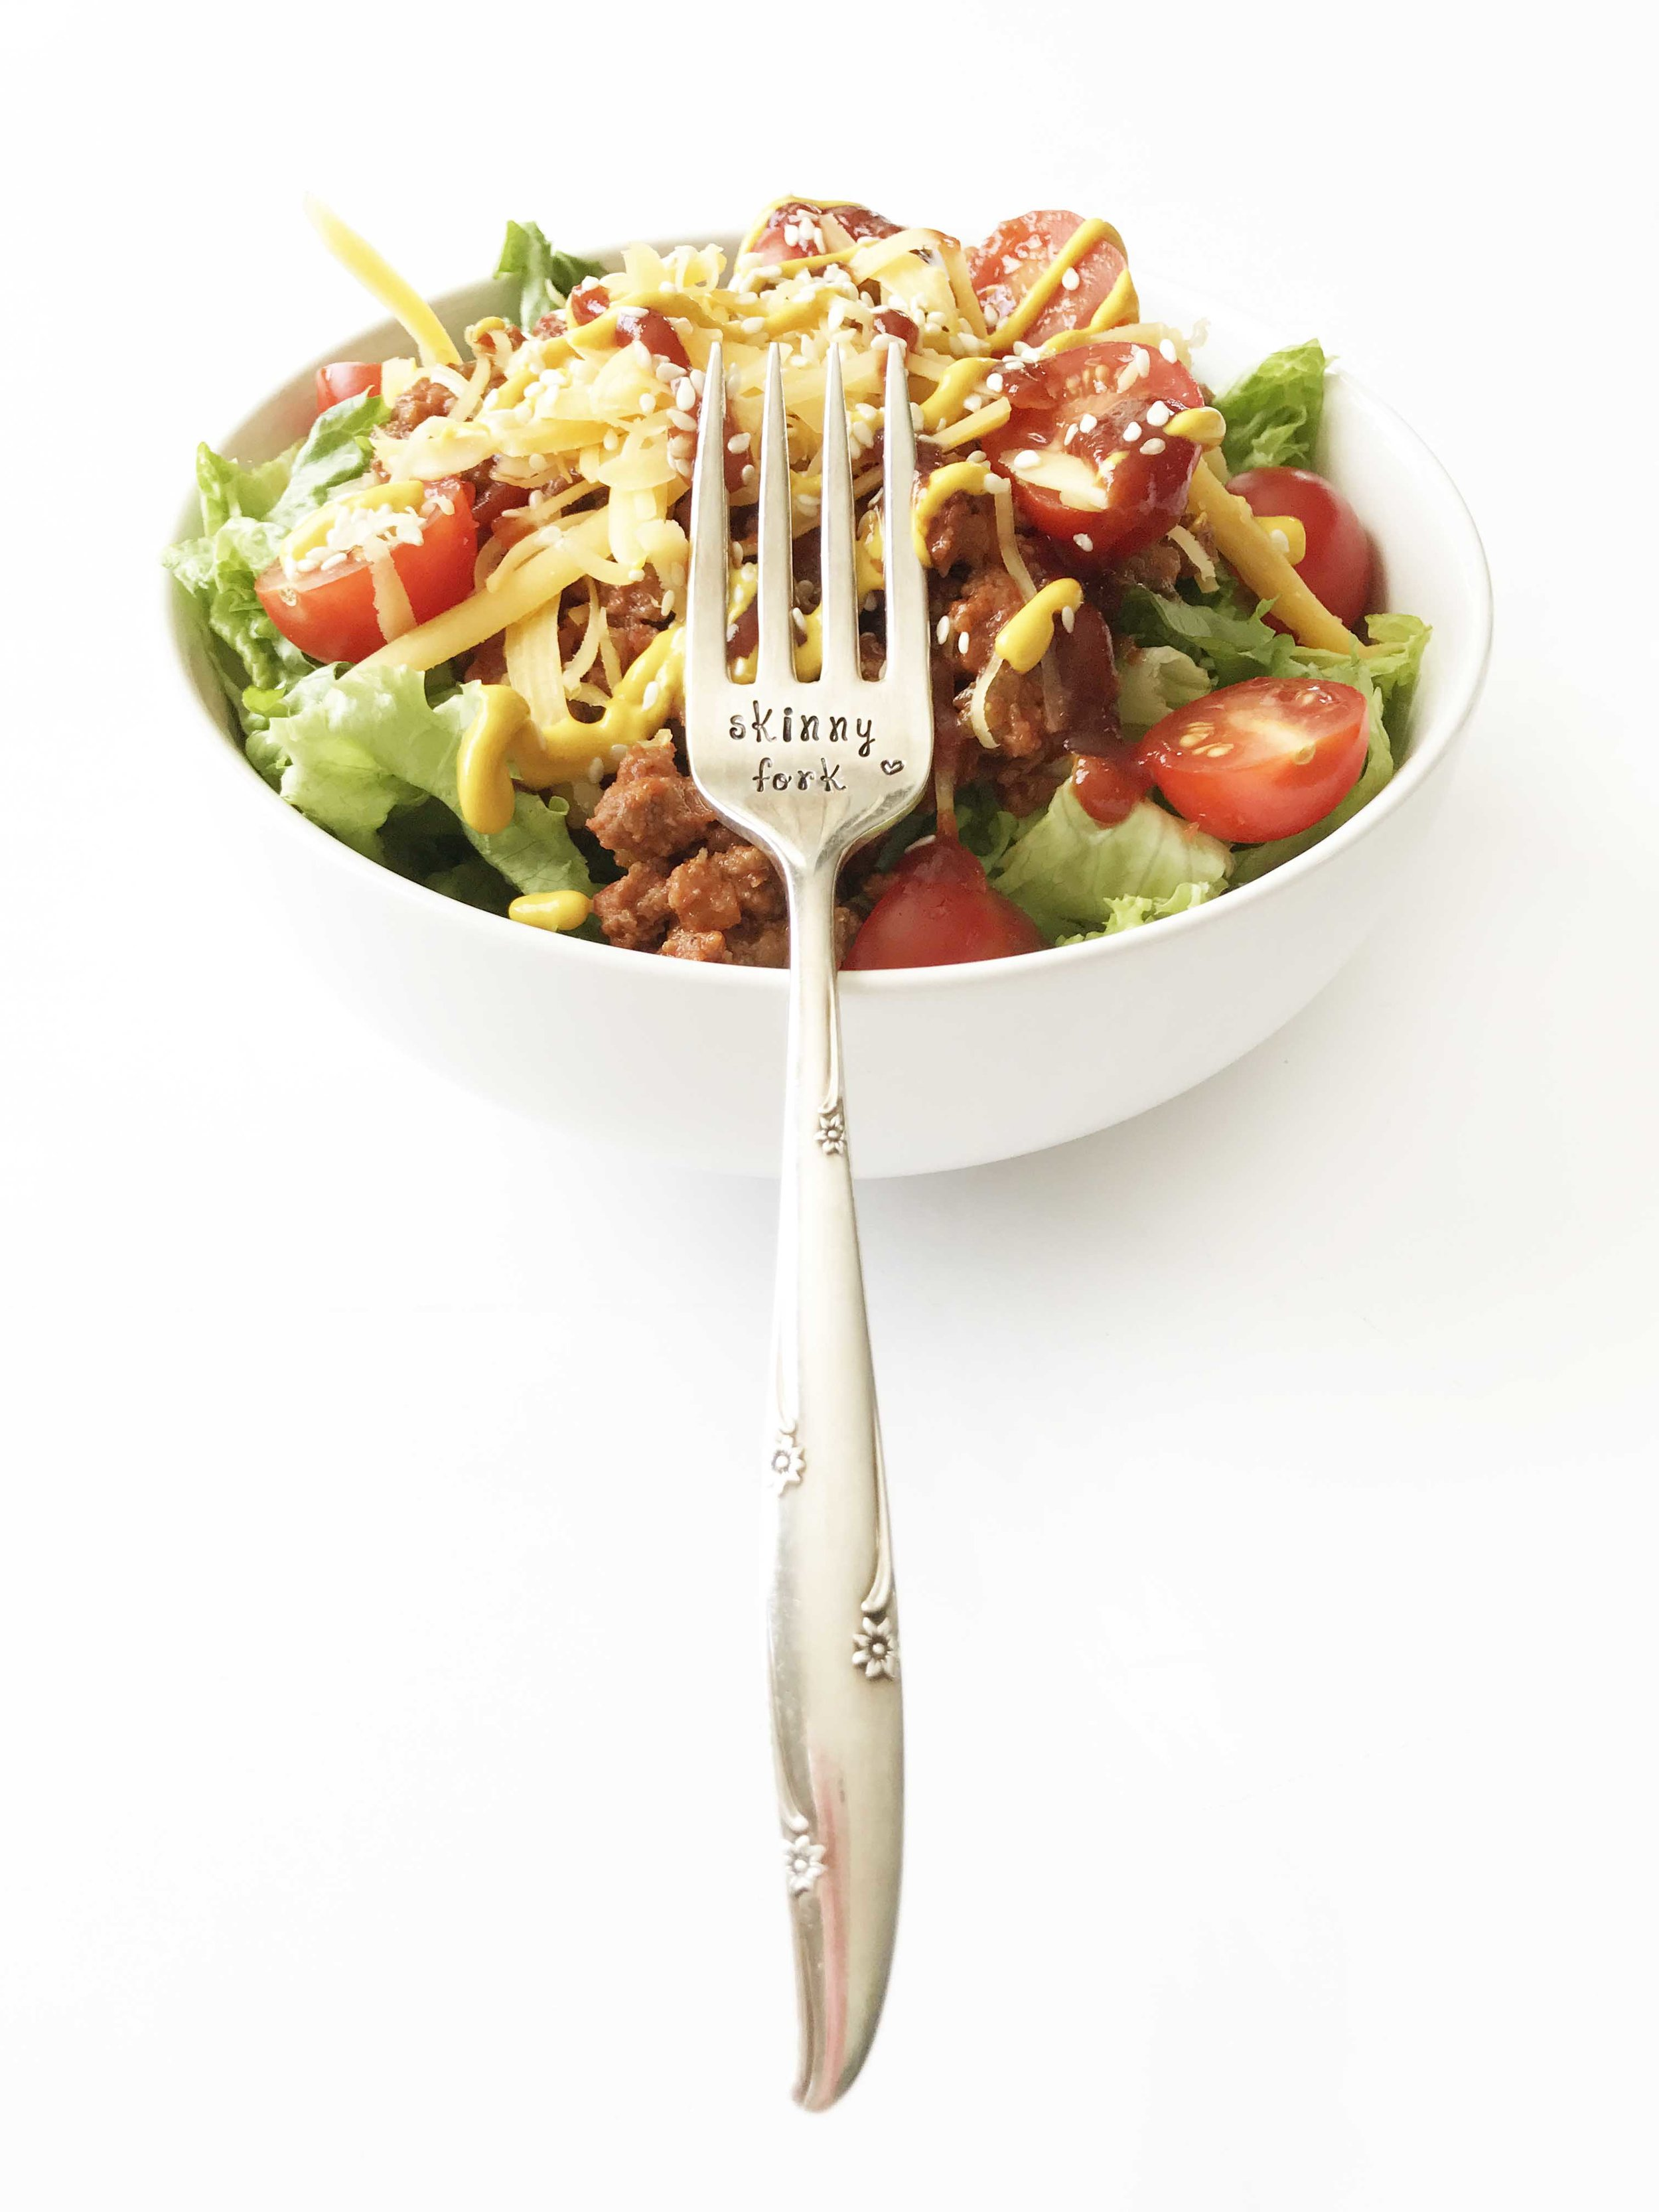 cheeseburger-salad8.jpg